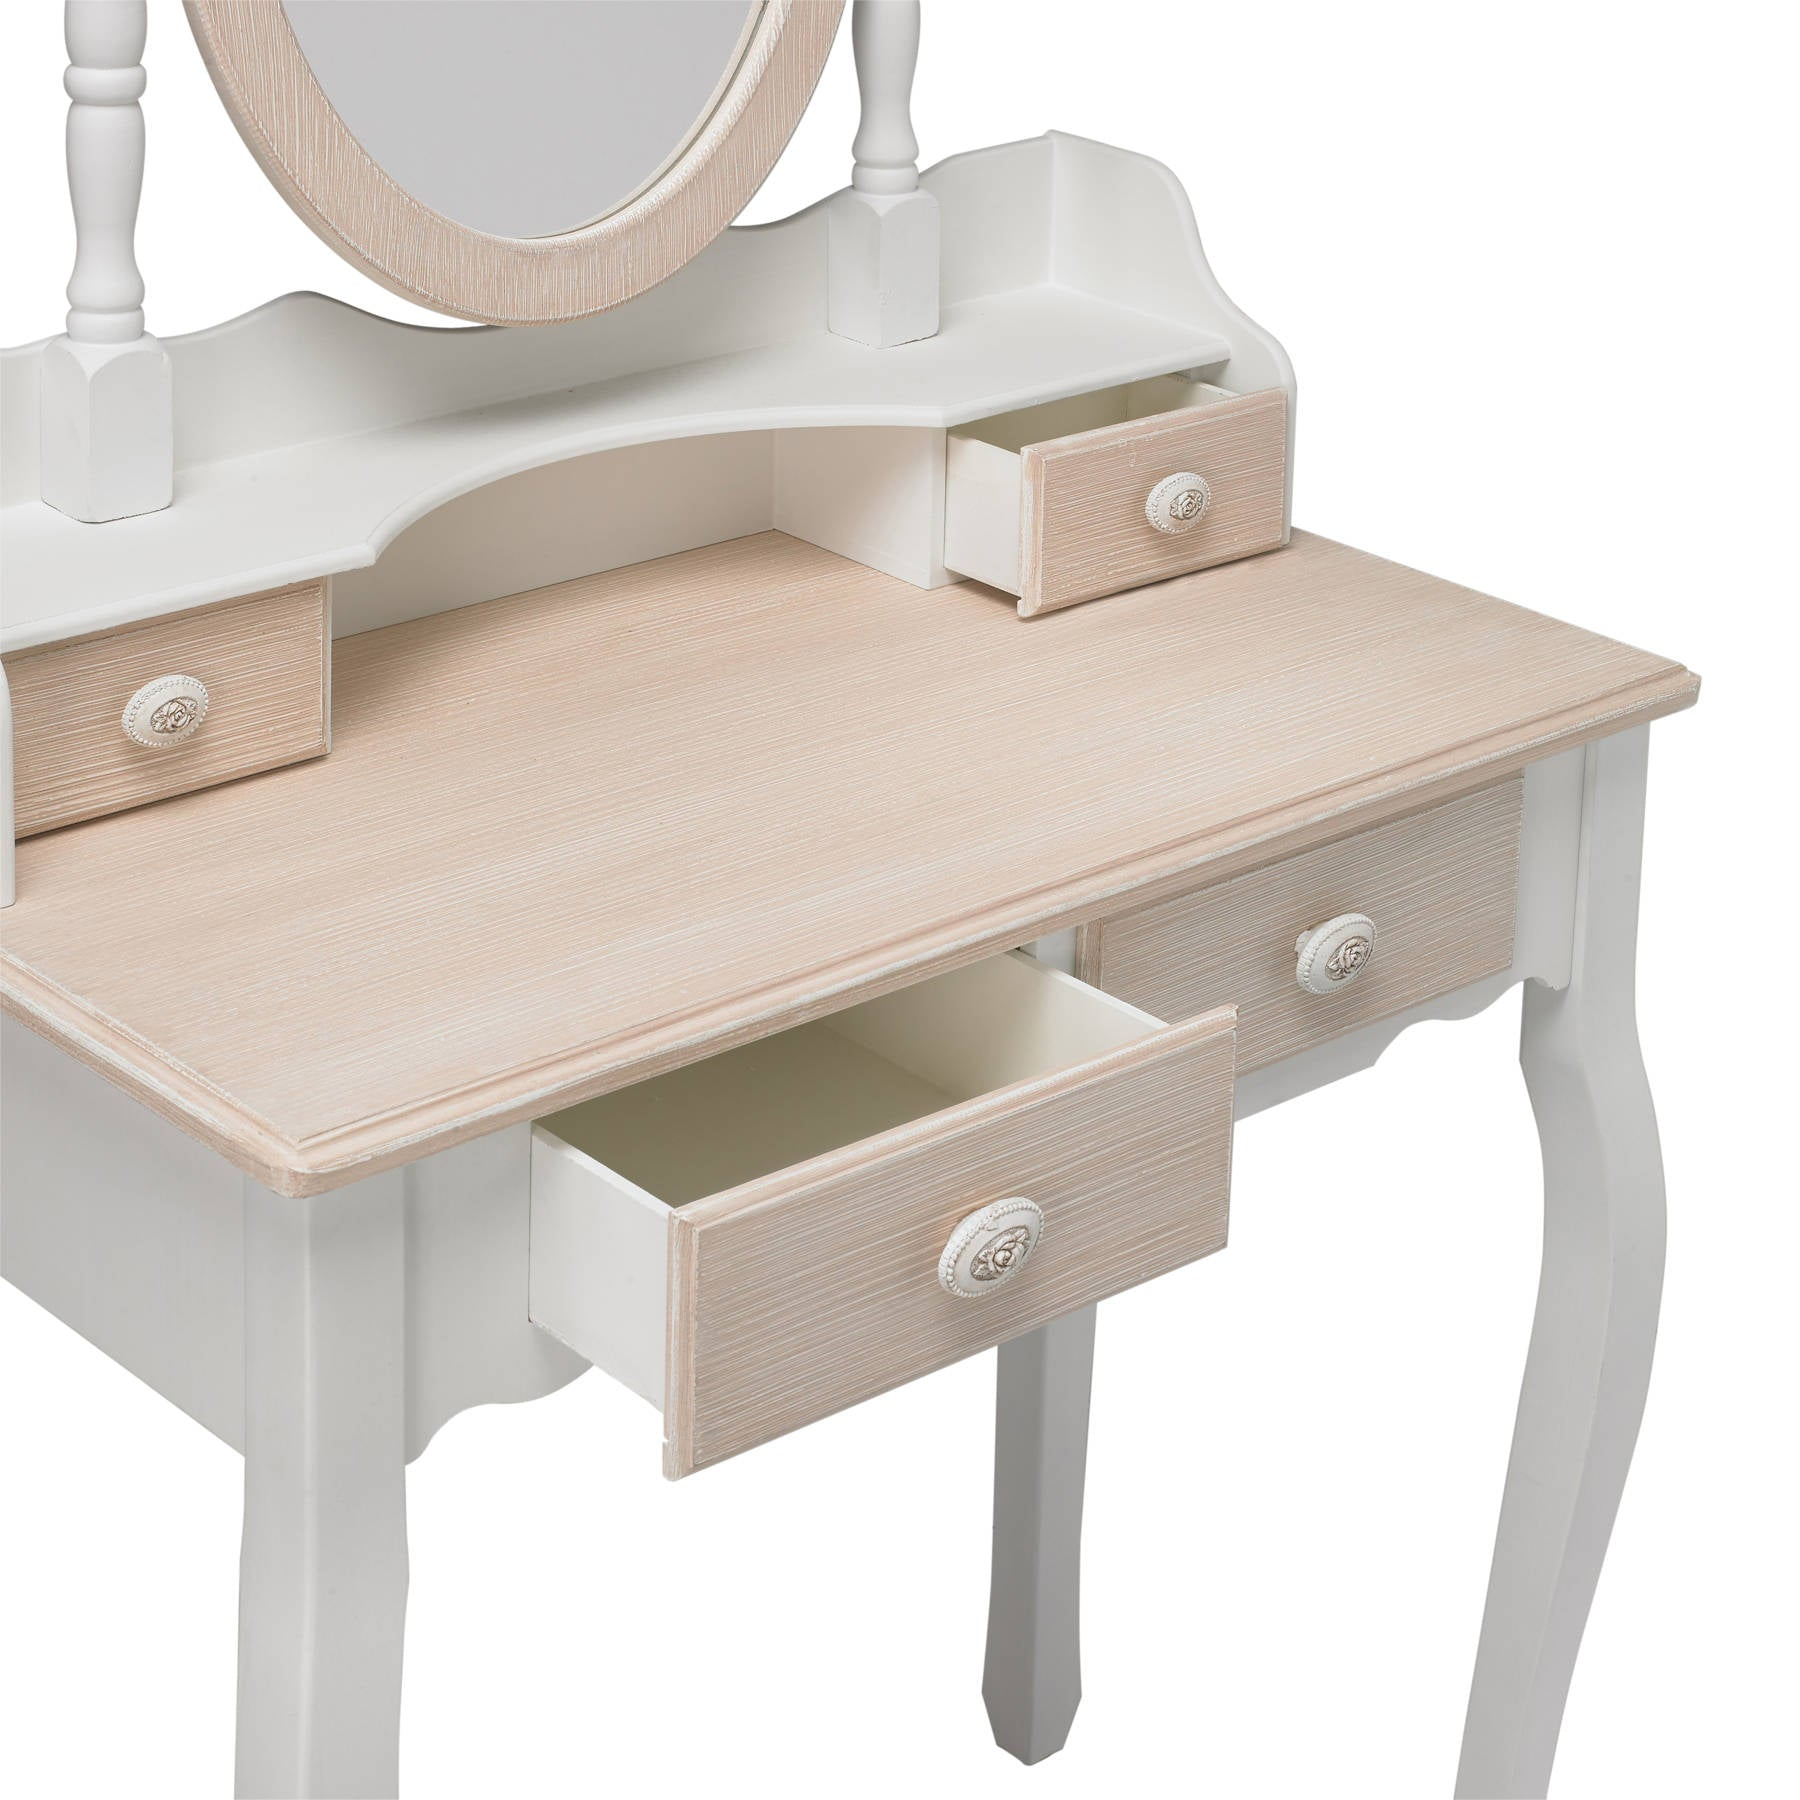 Lorient Dressing Table with Table Mirror and Stool - Ezzo